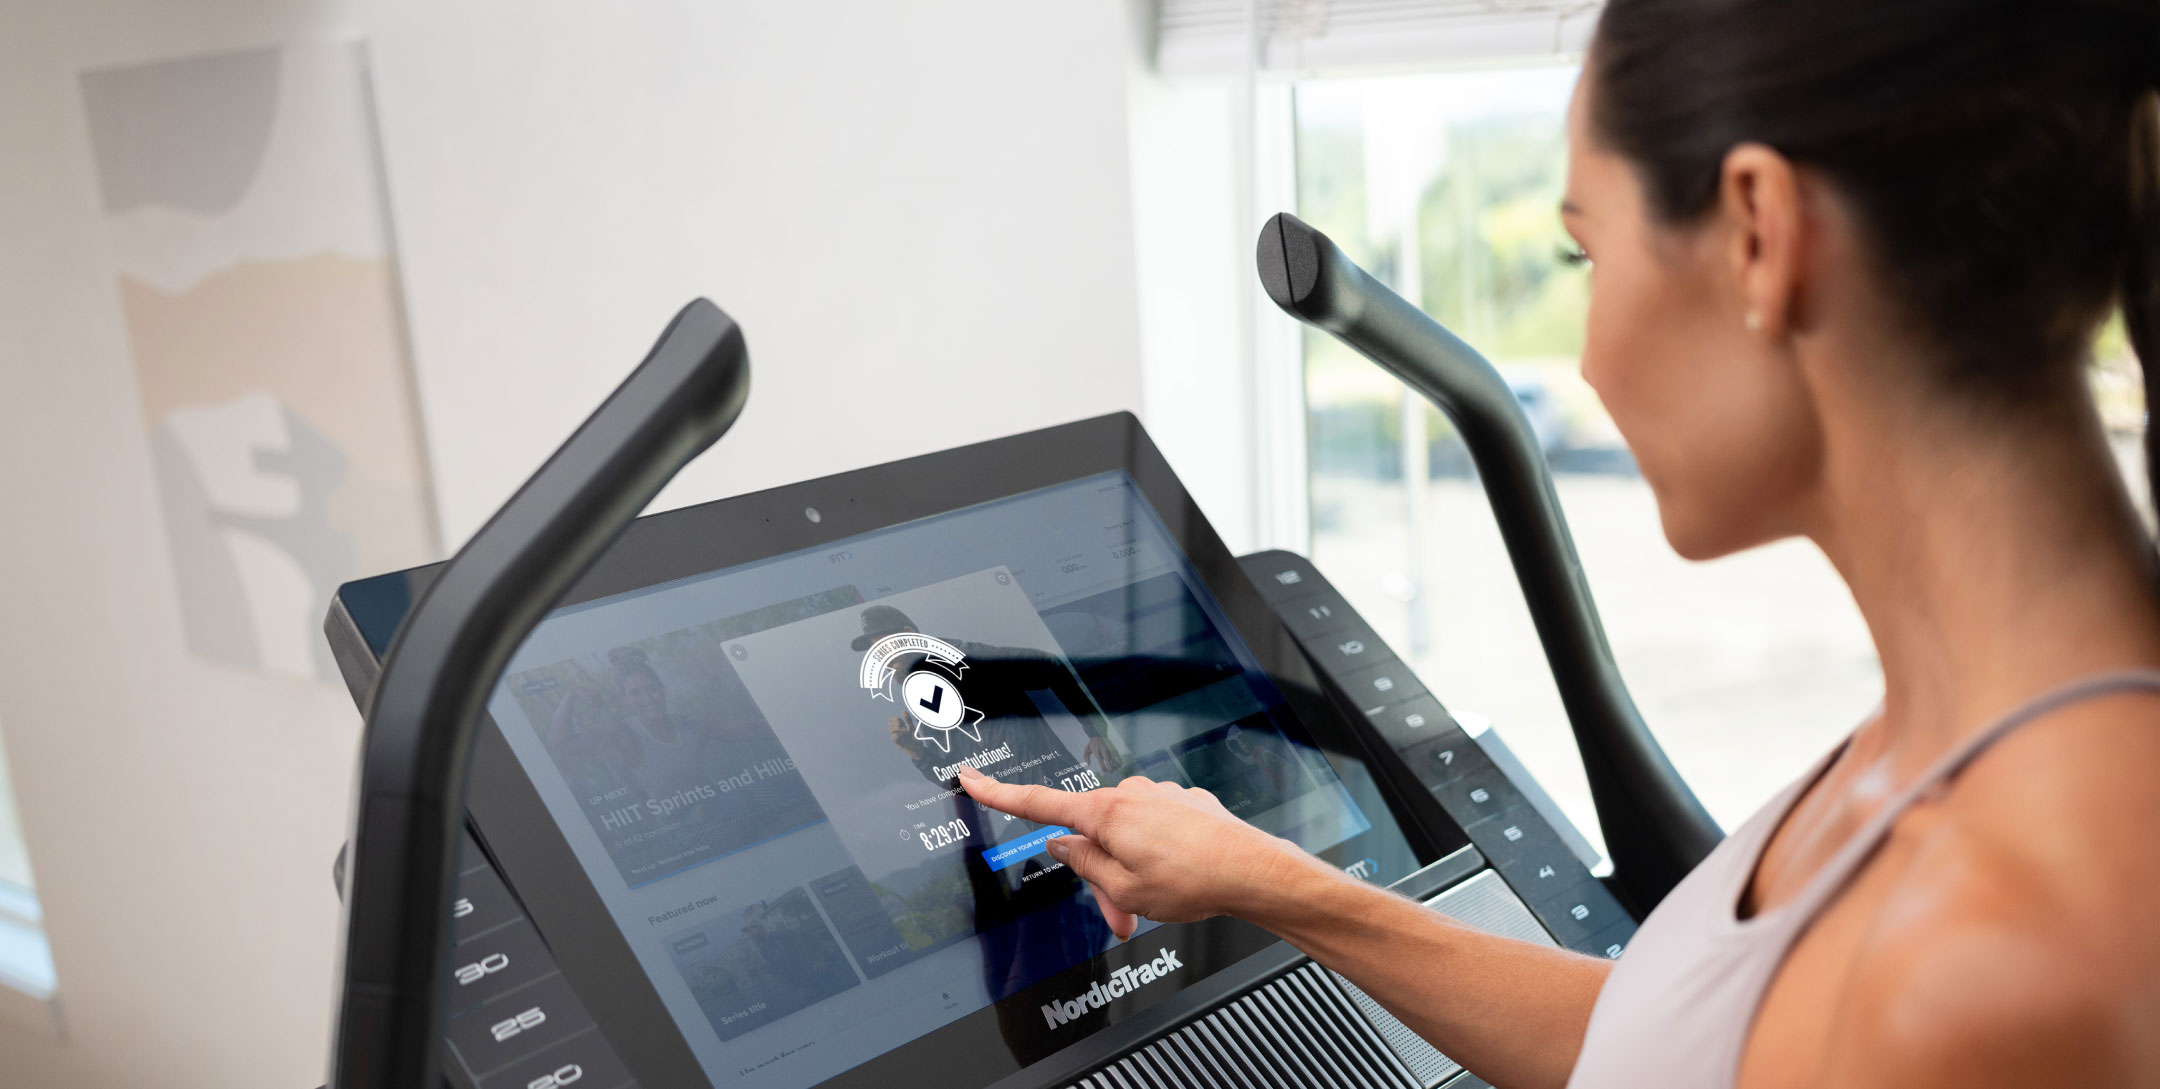 Woman uses screen on NordicTrack treadmill